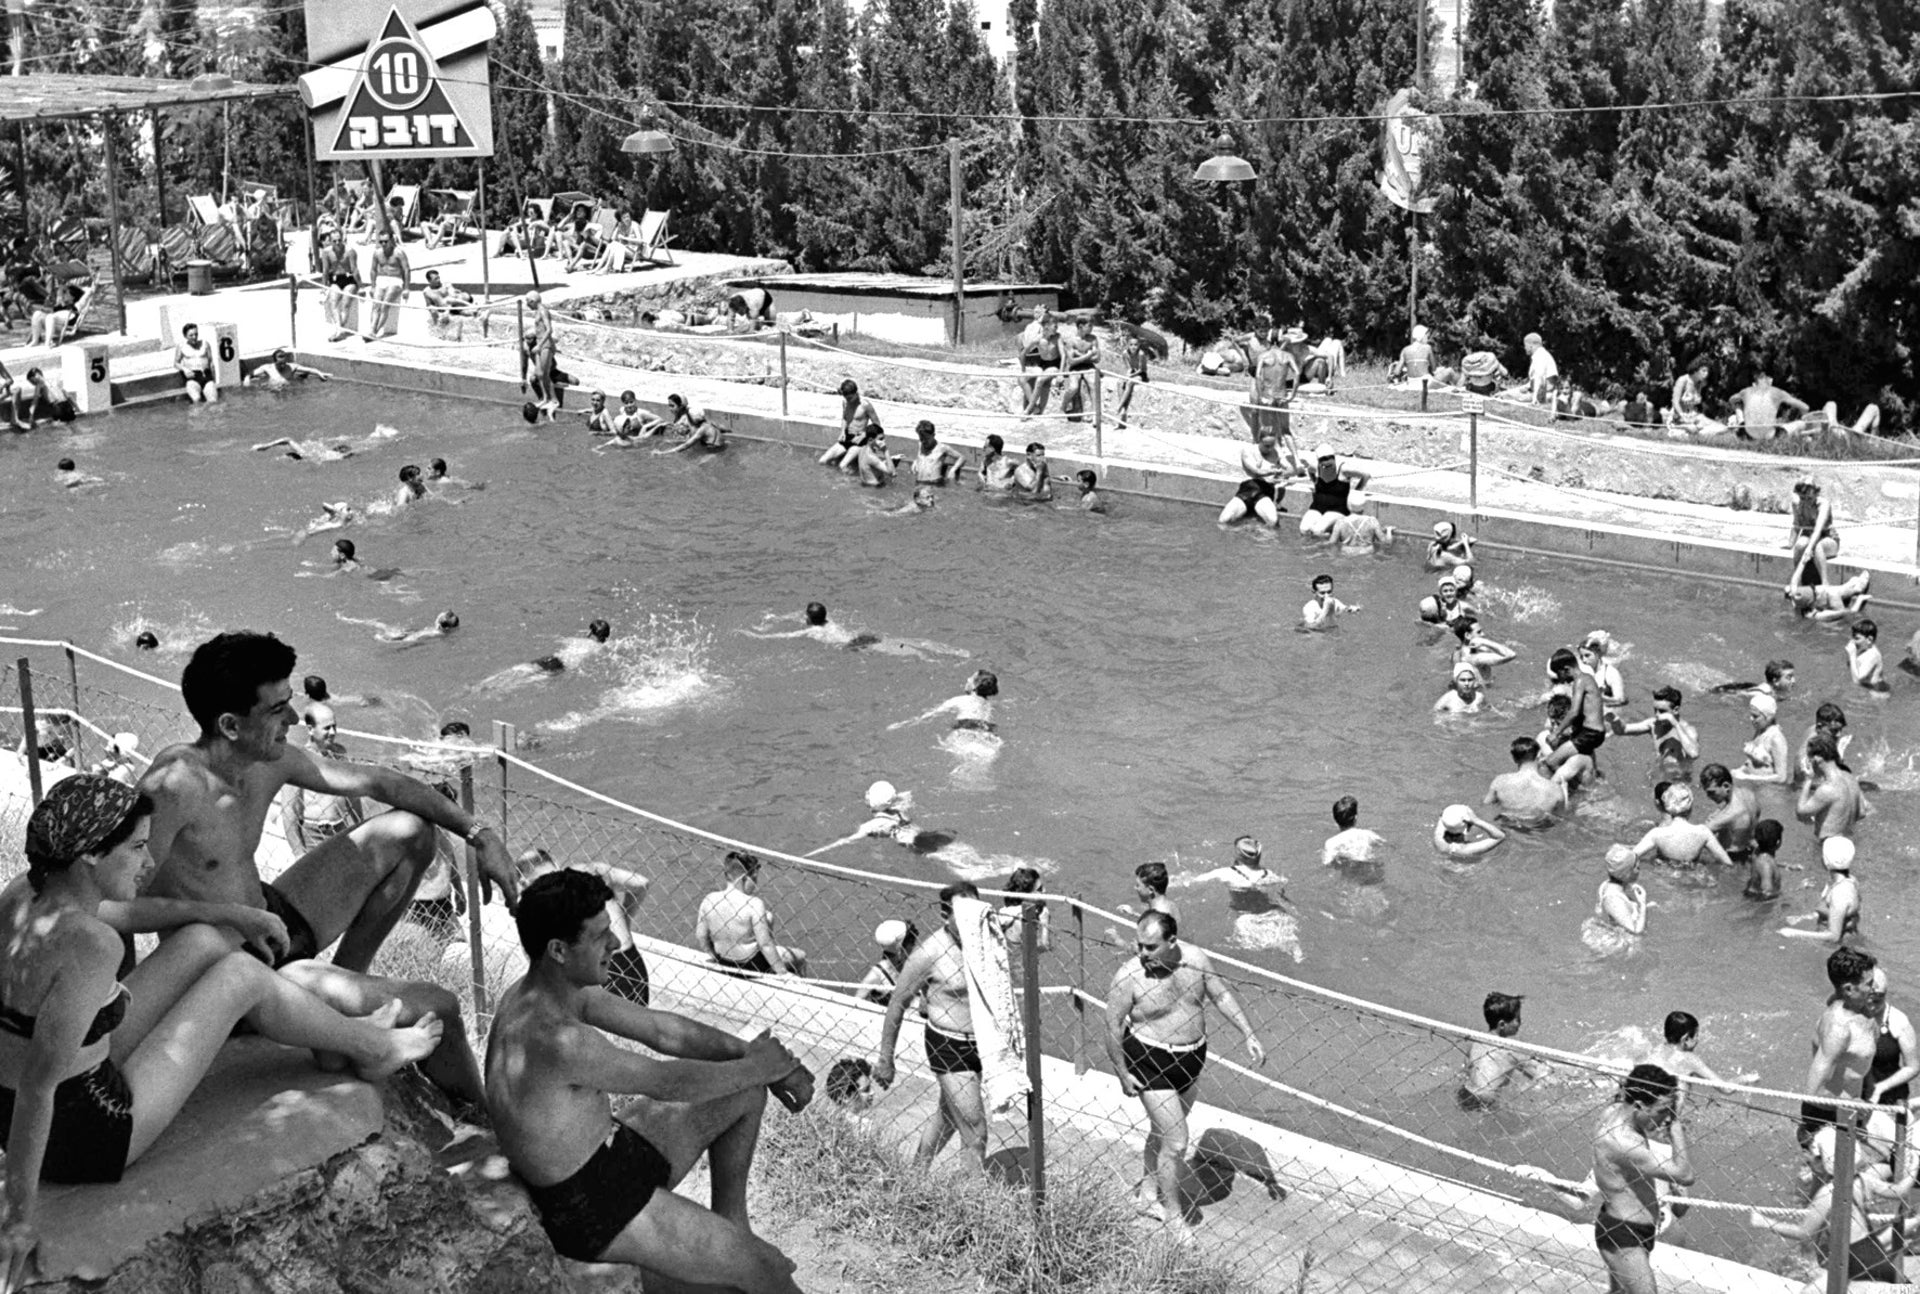 The Rambam pool in Givatayim, 1950.